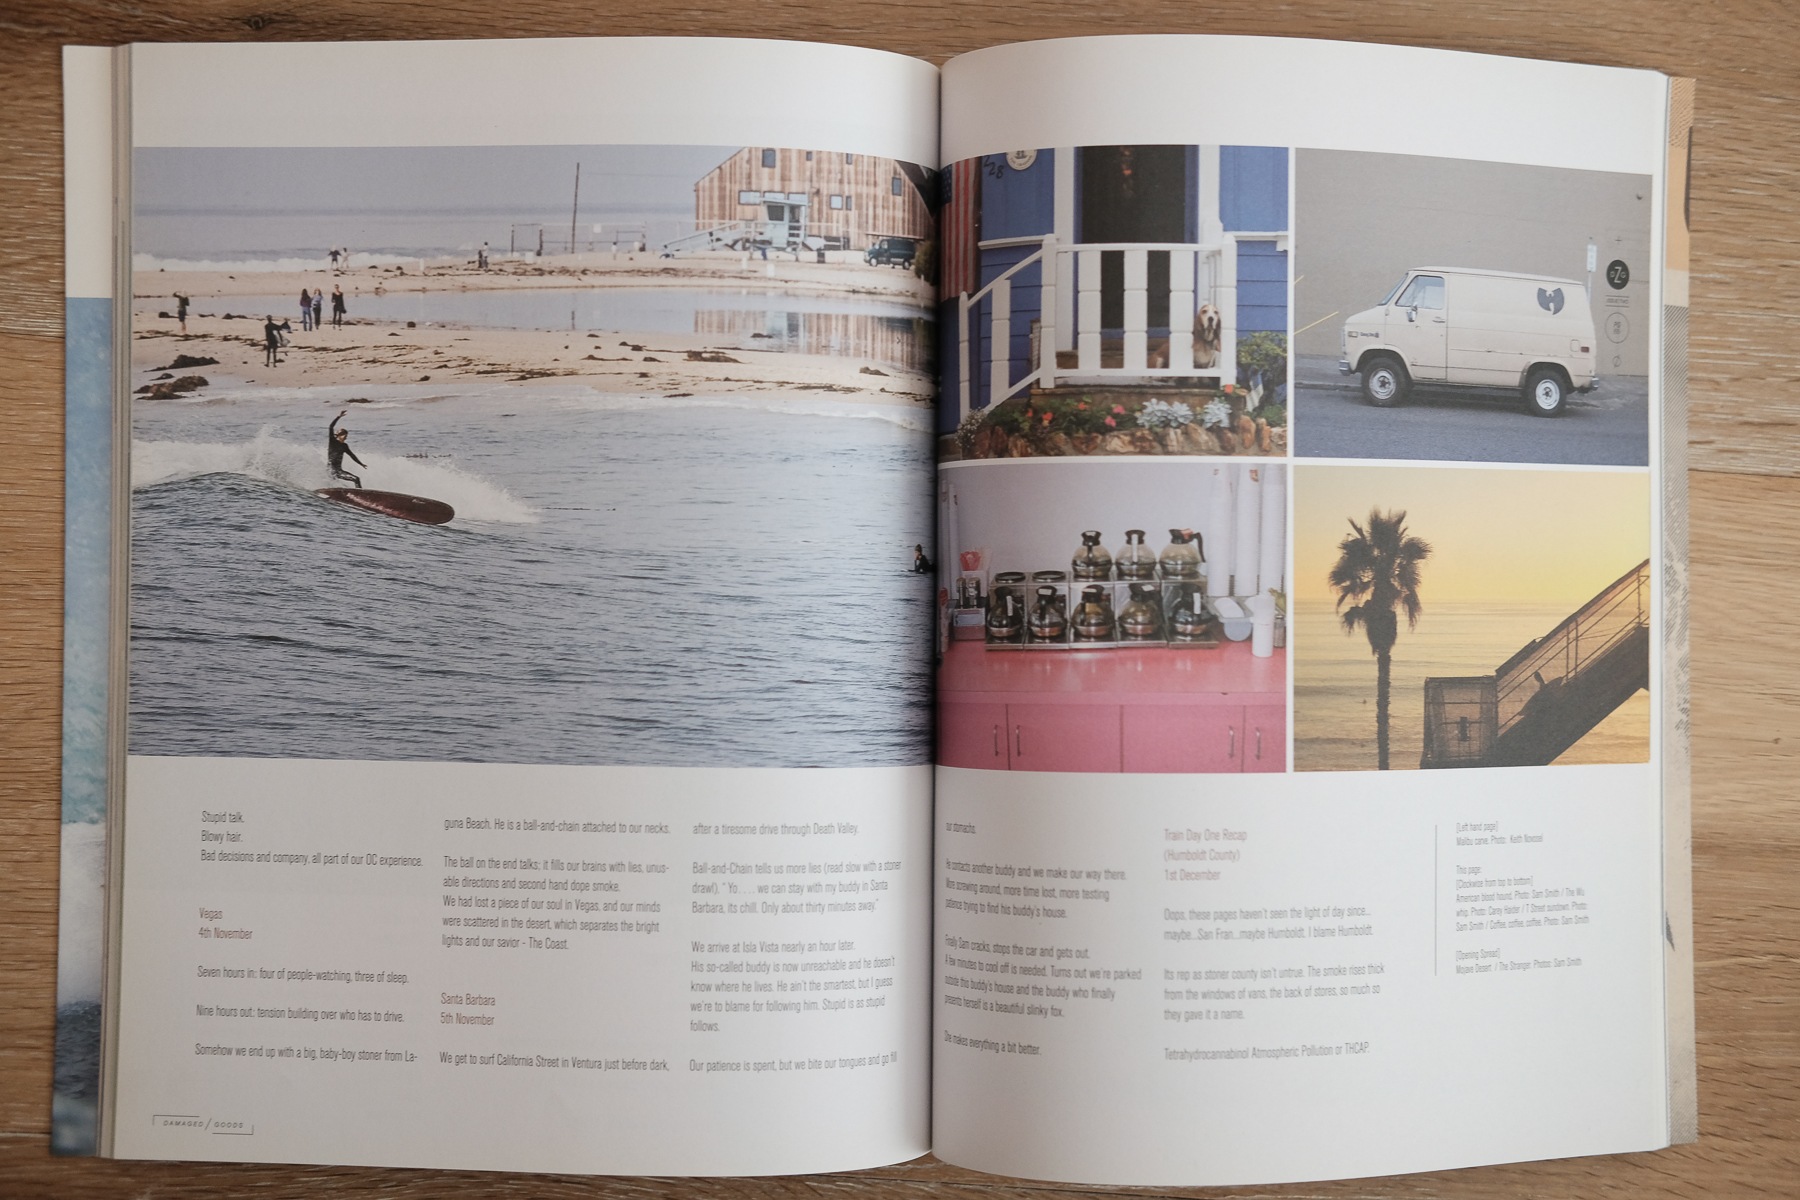 Damaged Goods Magazine (Left)